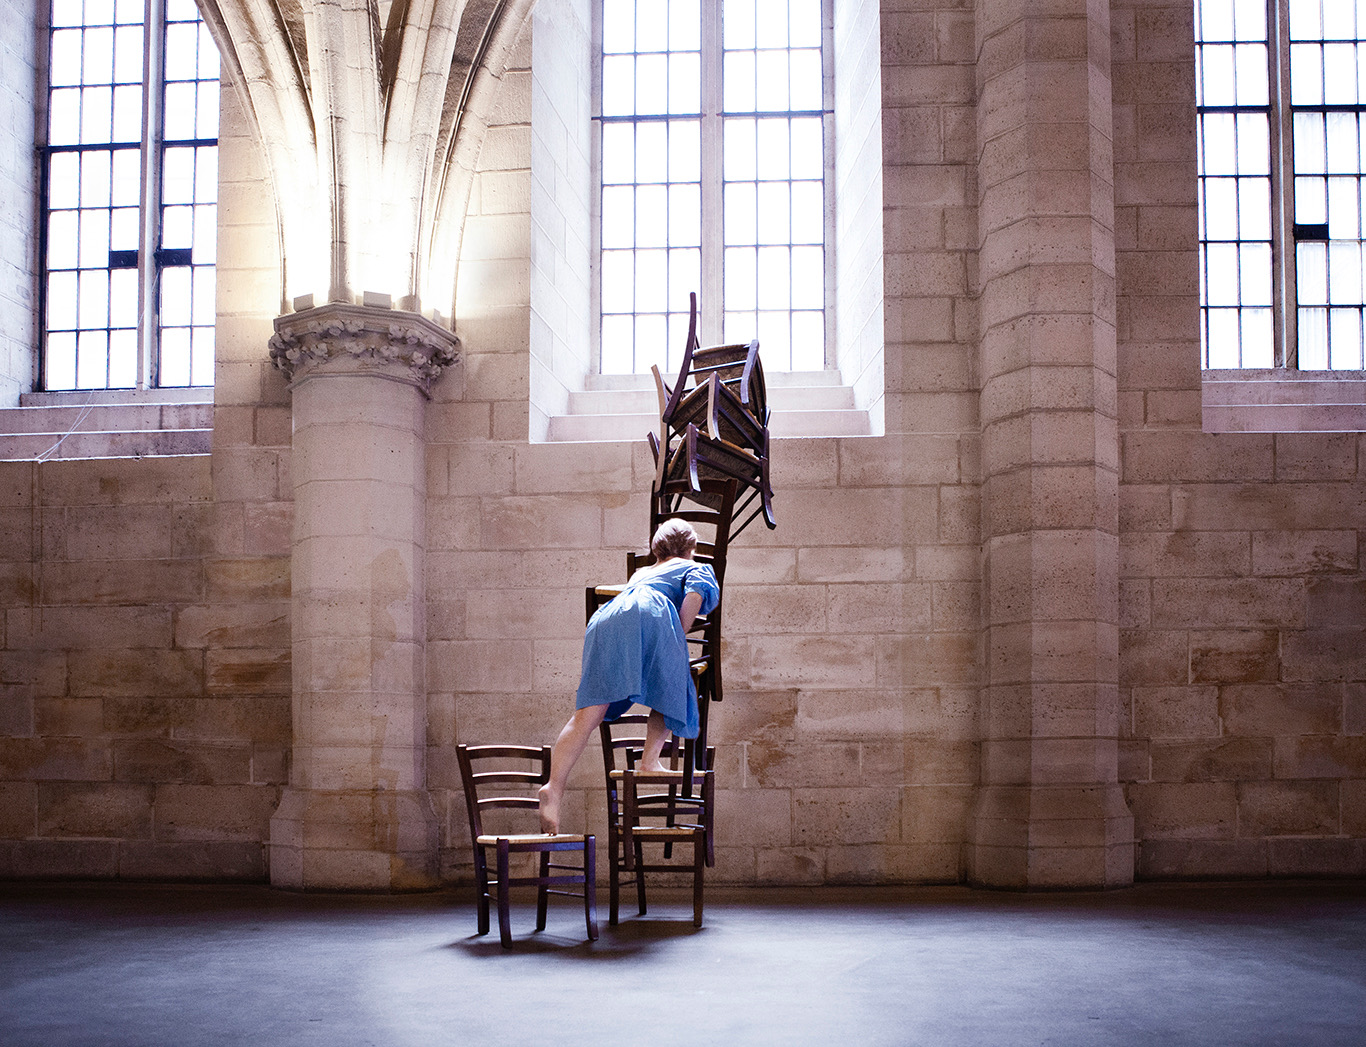 La conciergerie, Paris, 2014.JPG